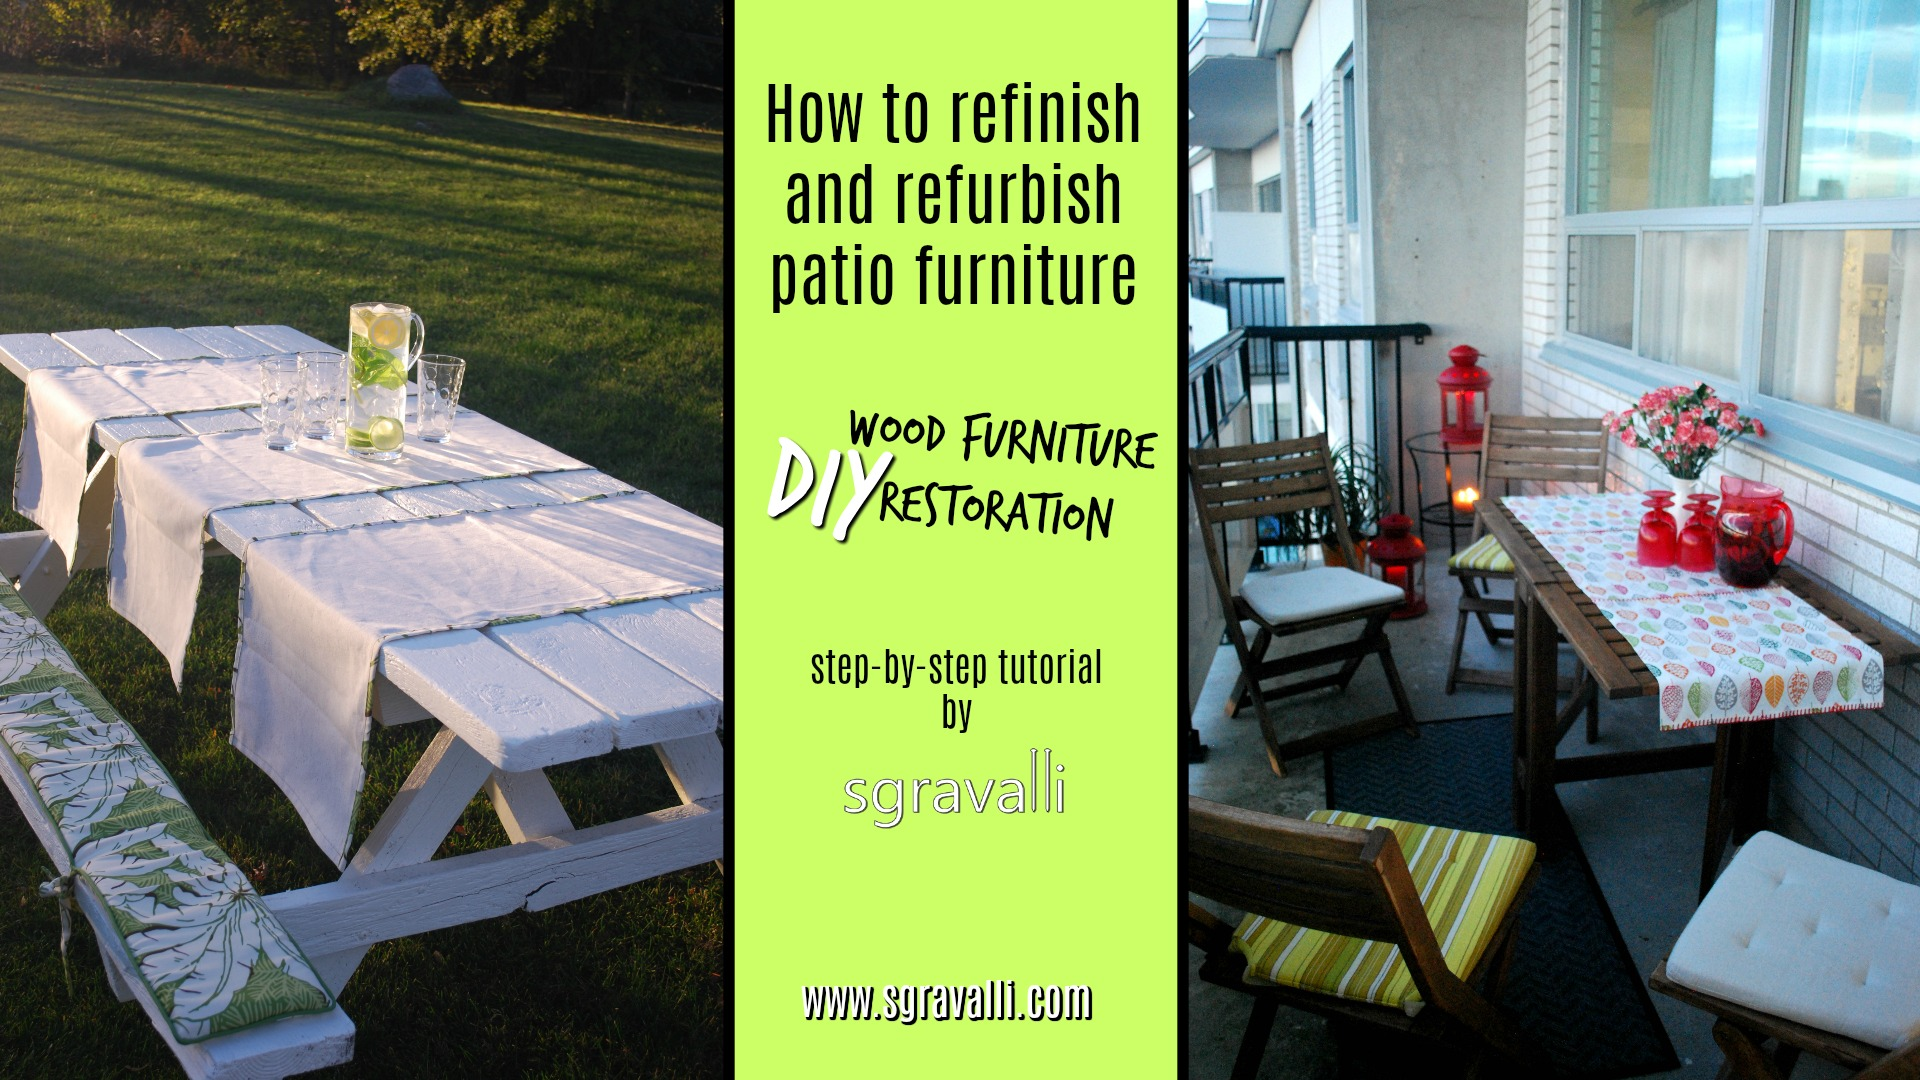 how to refinish and refurbish patio furniture diy wood furniture restoration using paint and stain u2022 sgravalli